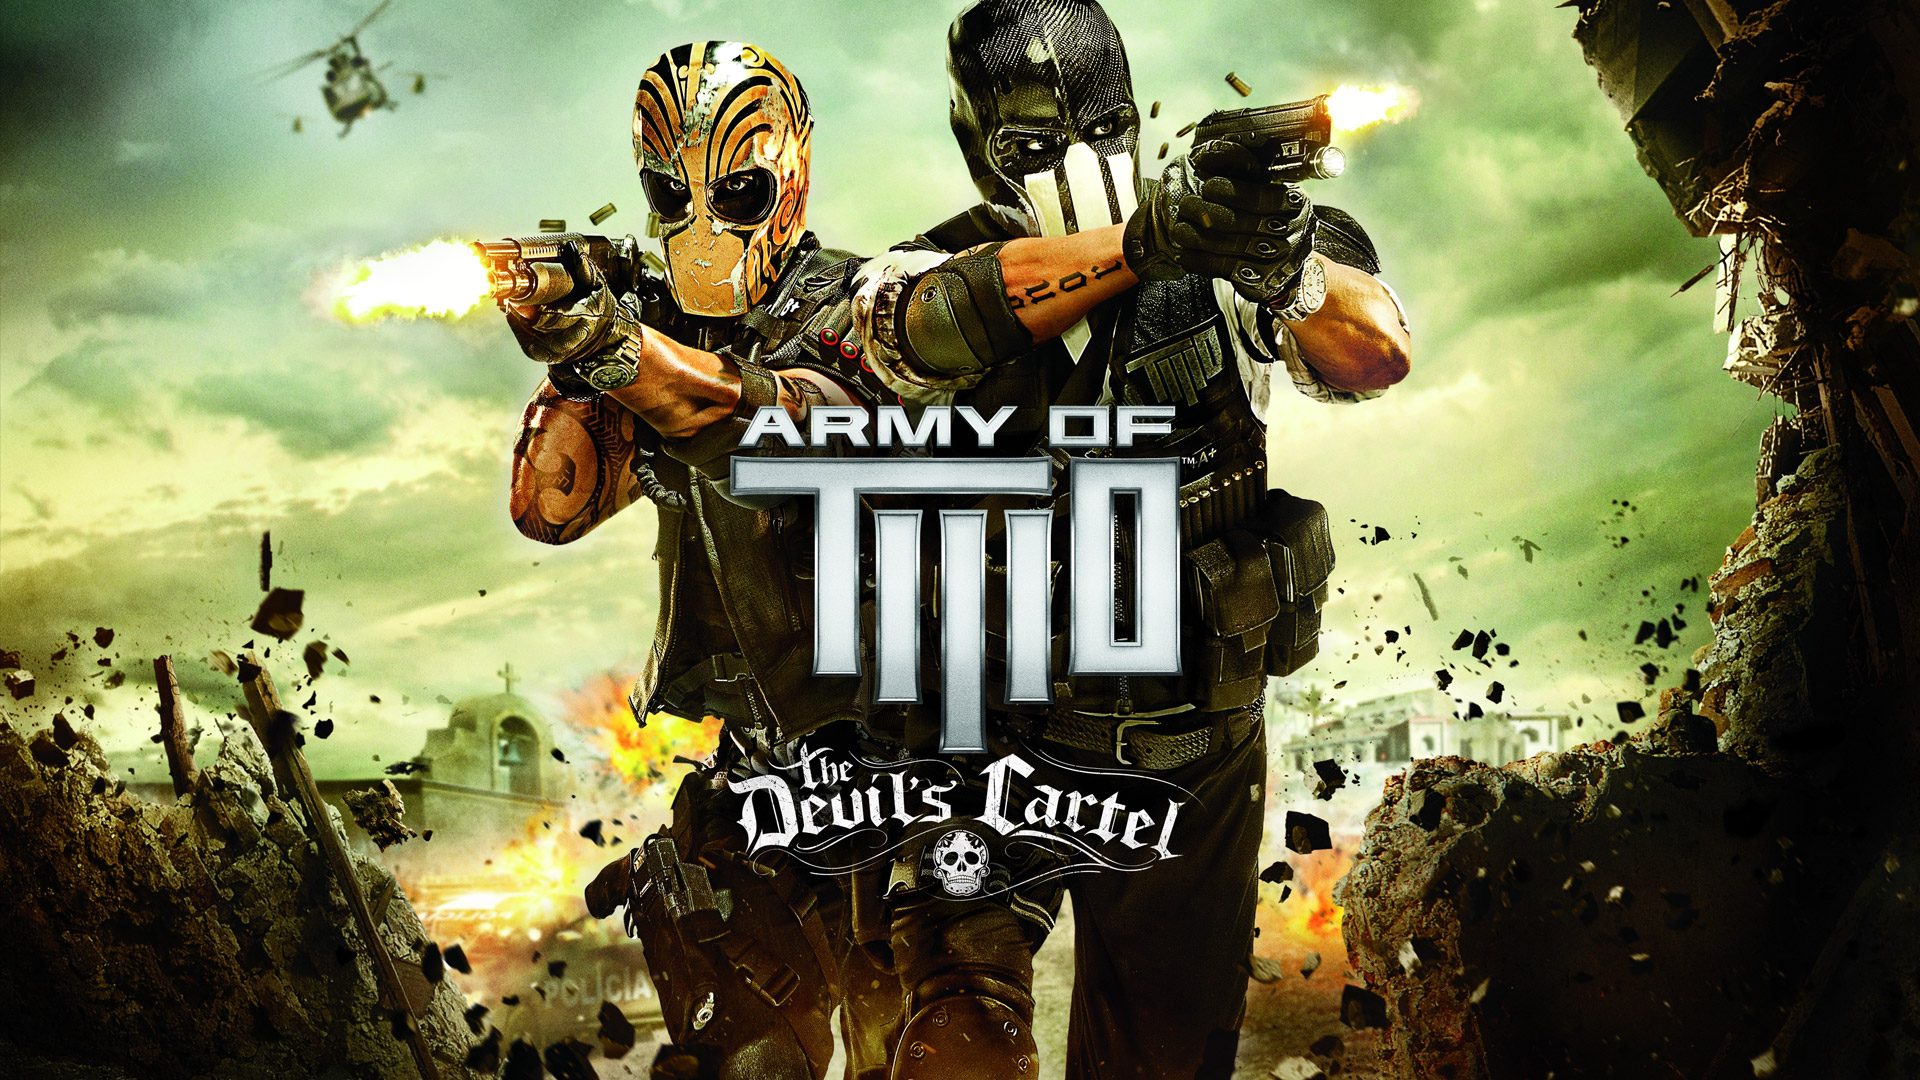 Army of Two Devils Cartel wallpaper 4